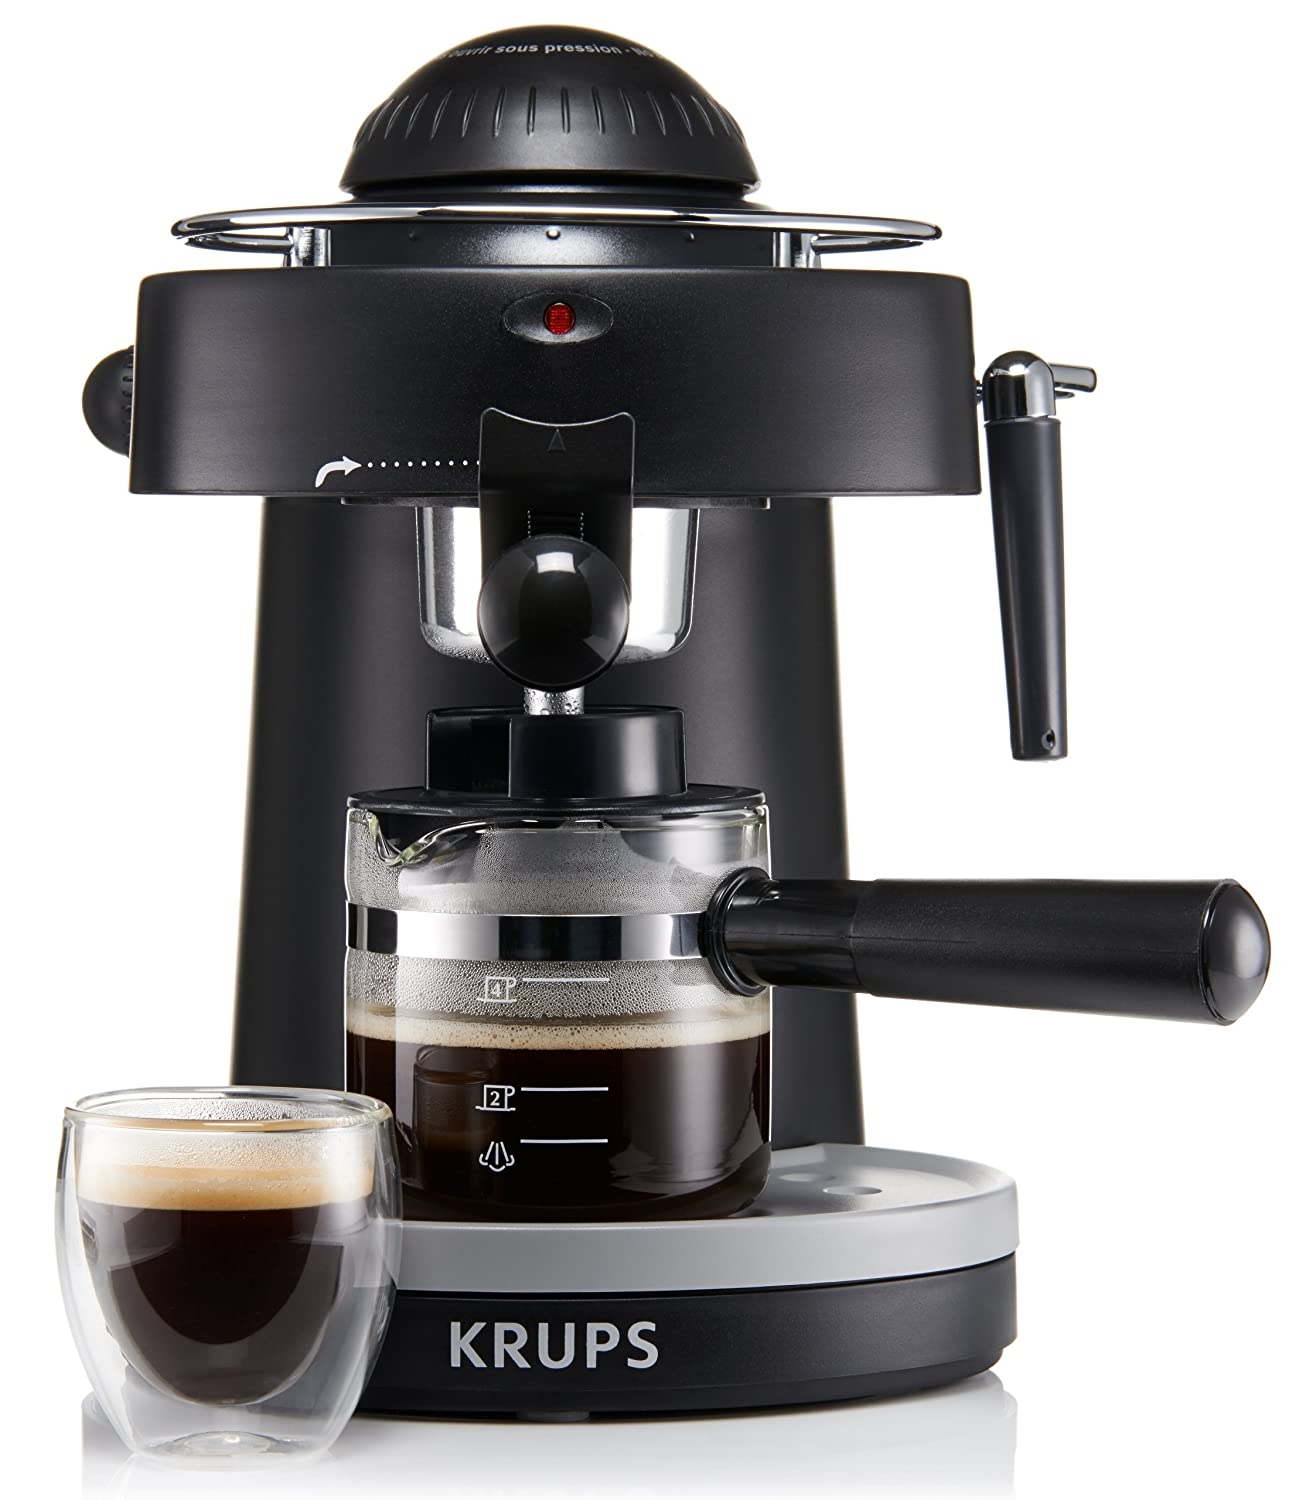 KRUPS XP100050 Steam Espresso Machine with Frothing Nozzle for Cappuccino, Black 8000034767